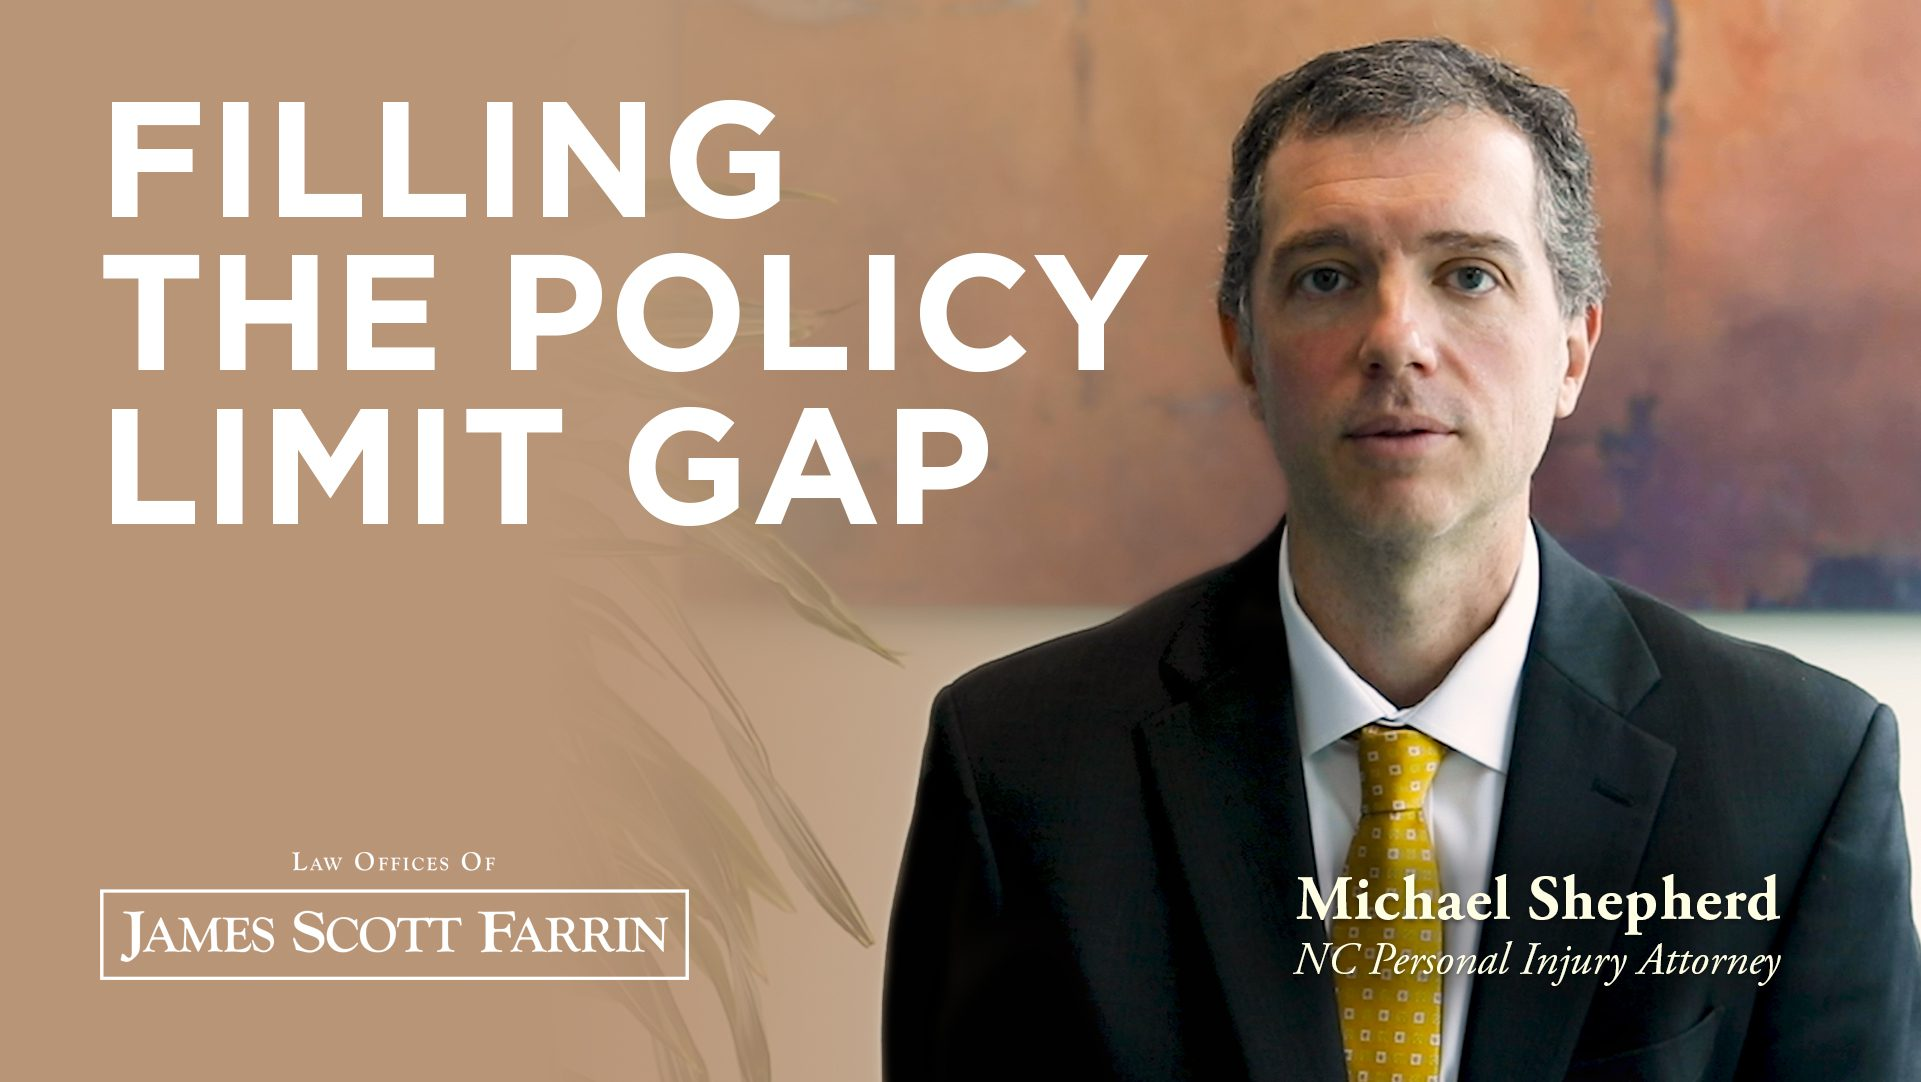 Filling the Policy Limit Gap by attorney Michael Shepherd